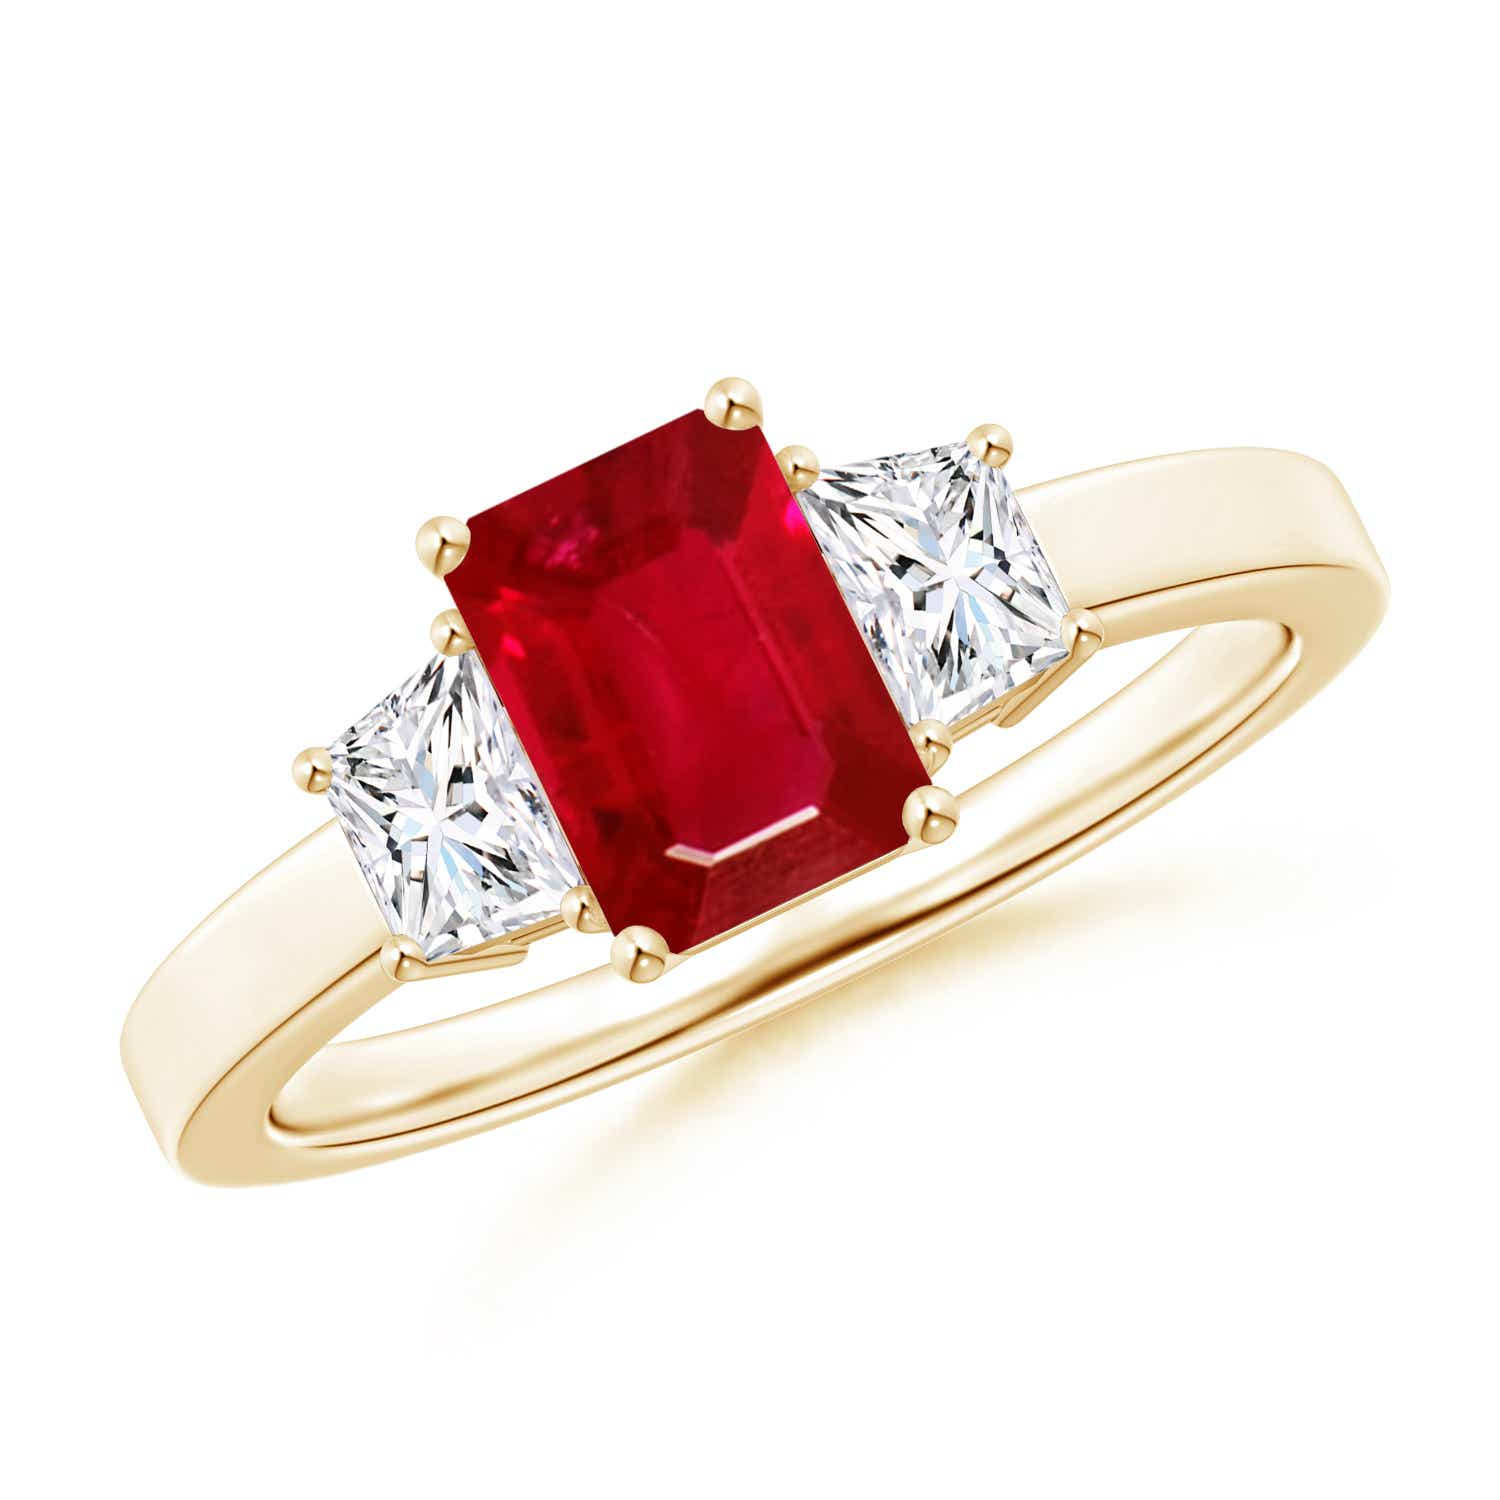 wg in prong set band wedding stone bands ruby diamond gold nl with red jewelry round white shared anniversary